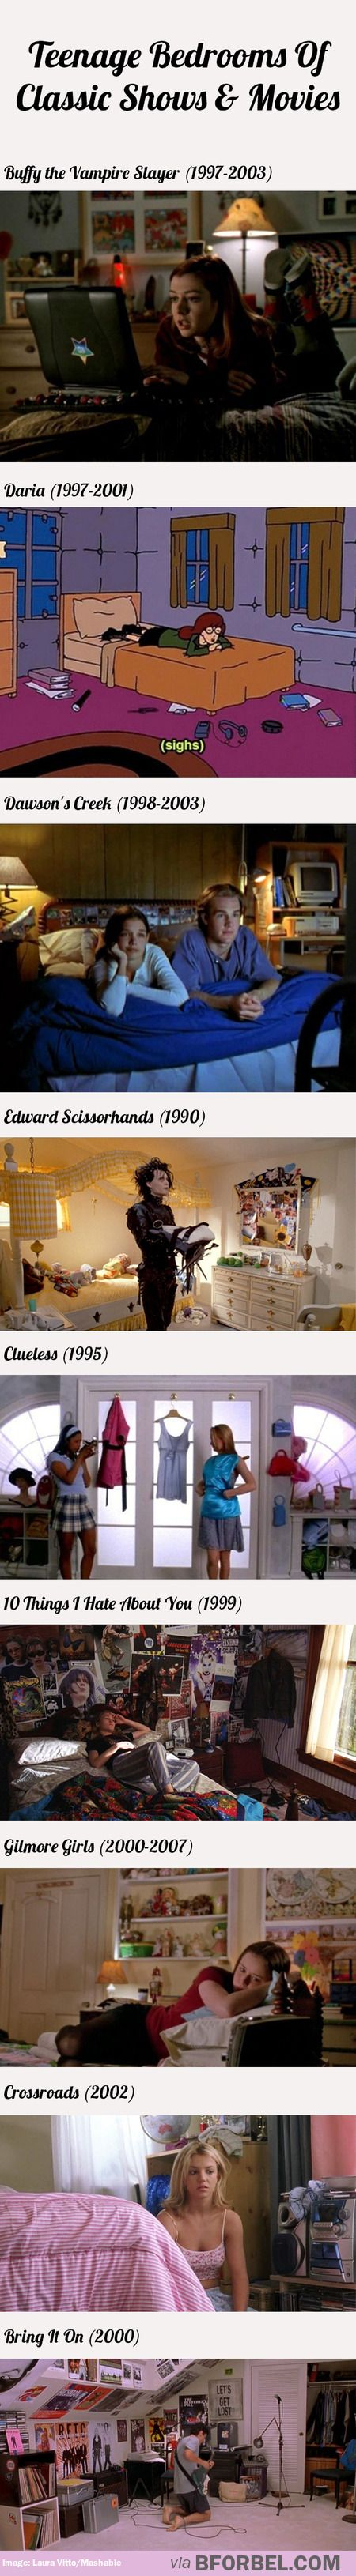 Throwback: teenage bedrooms of classic shows and movies